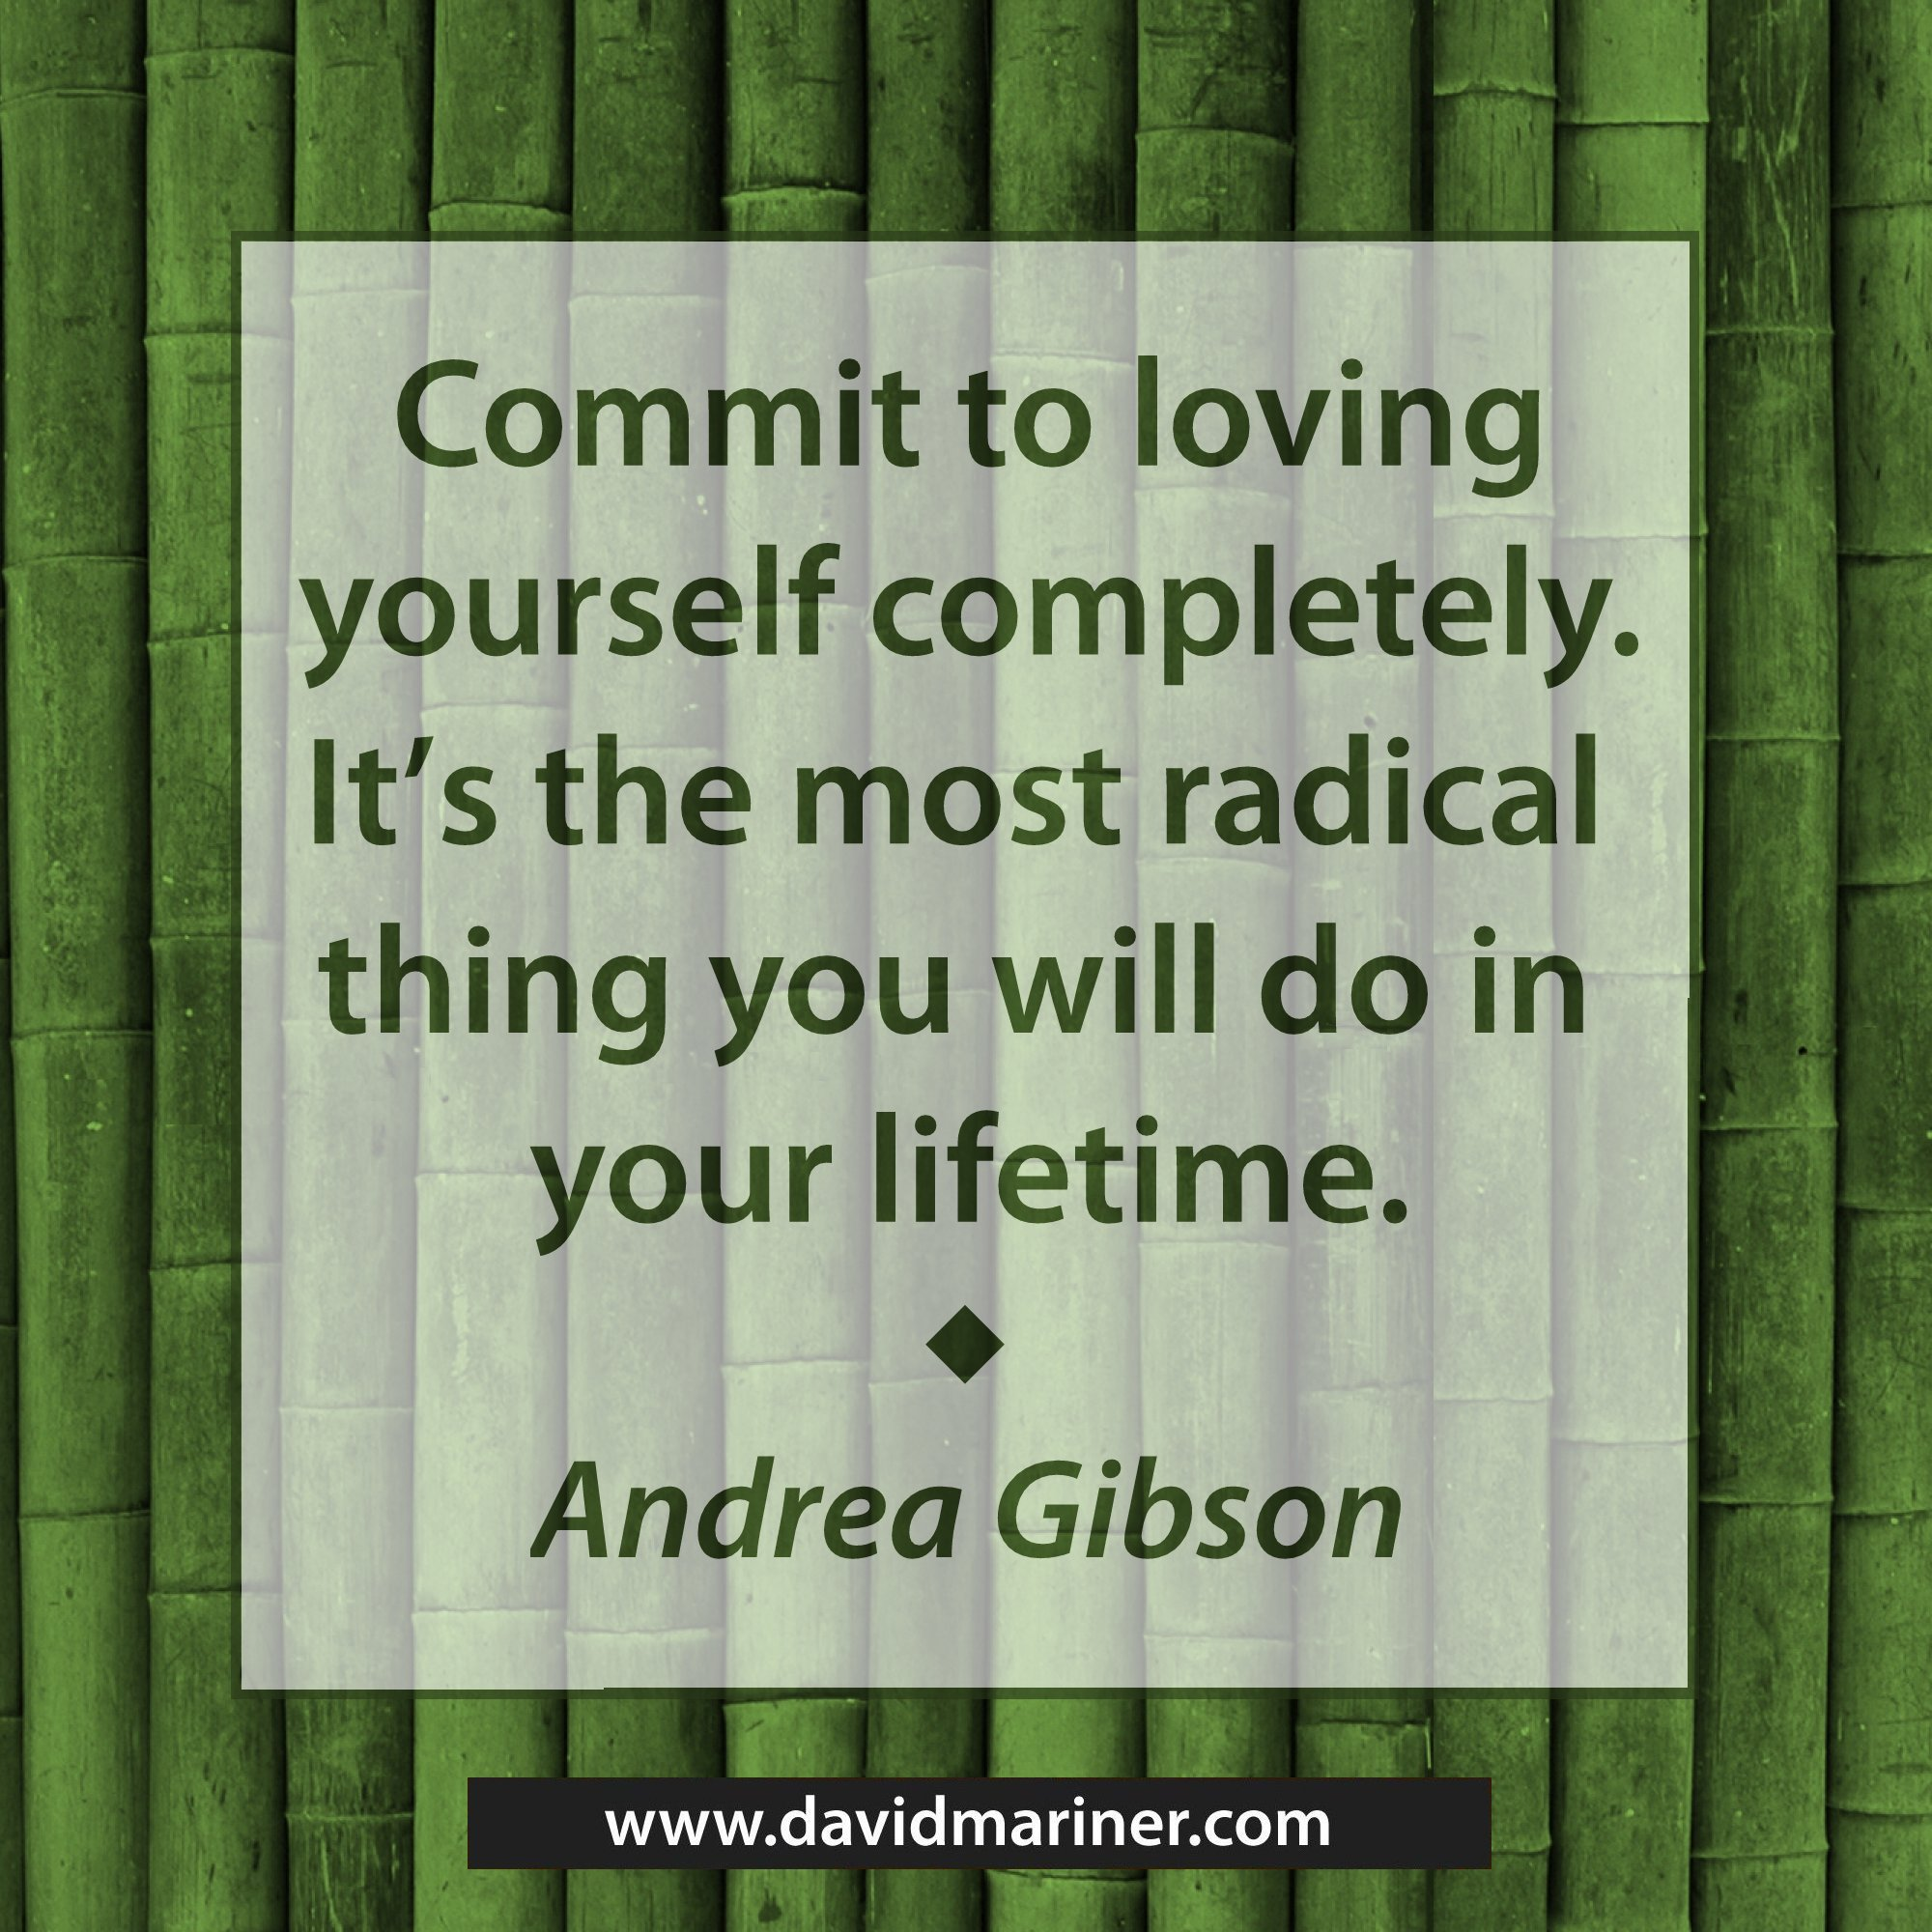 Commit to loving yourself completely. It's the most radical thing you will do in your lifetime.